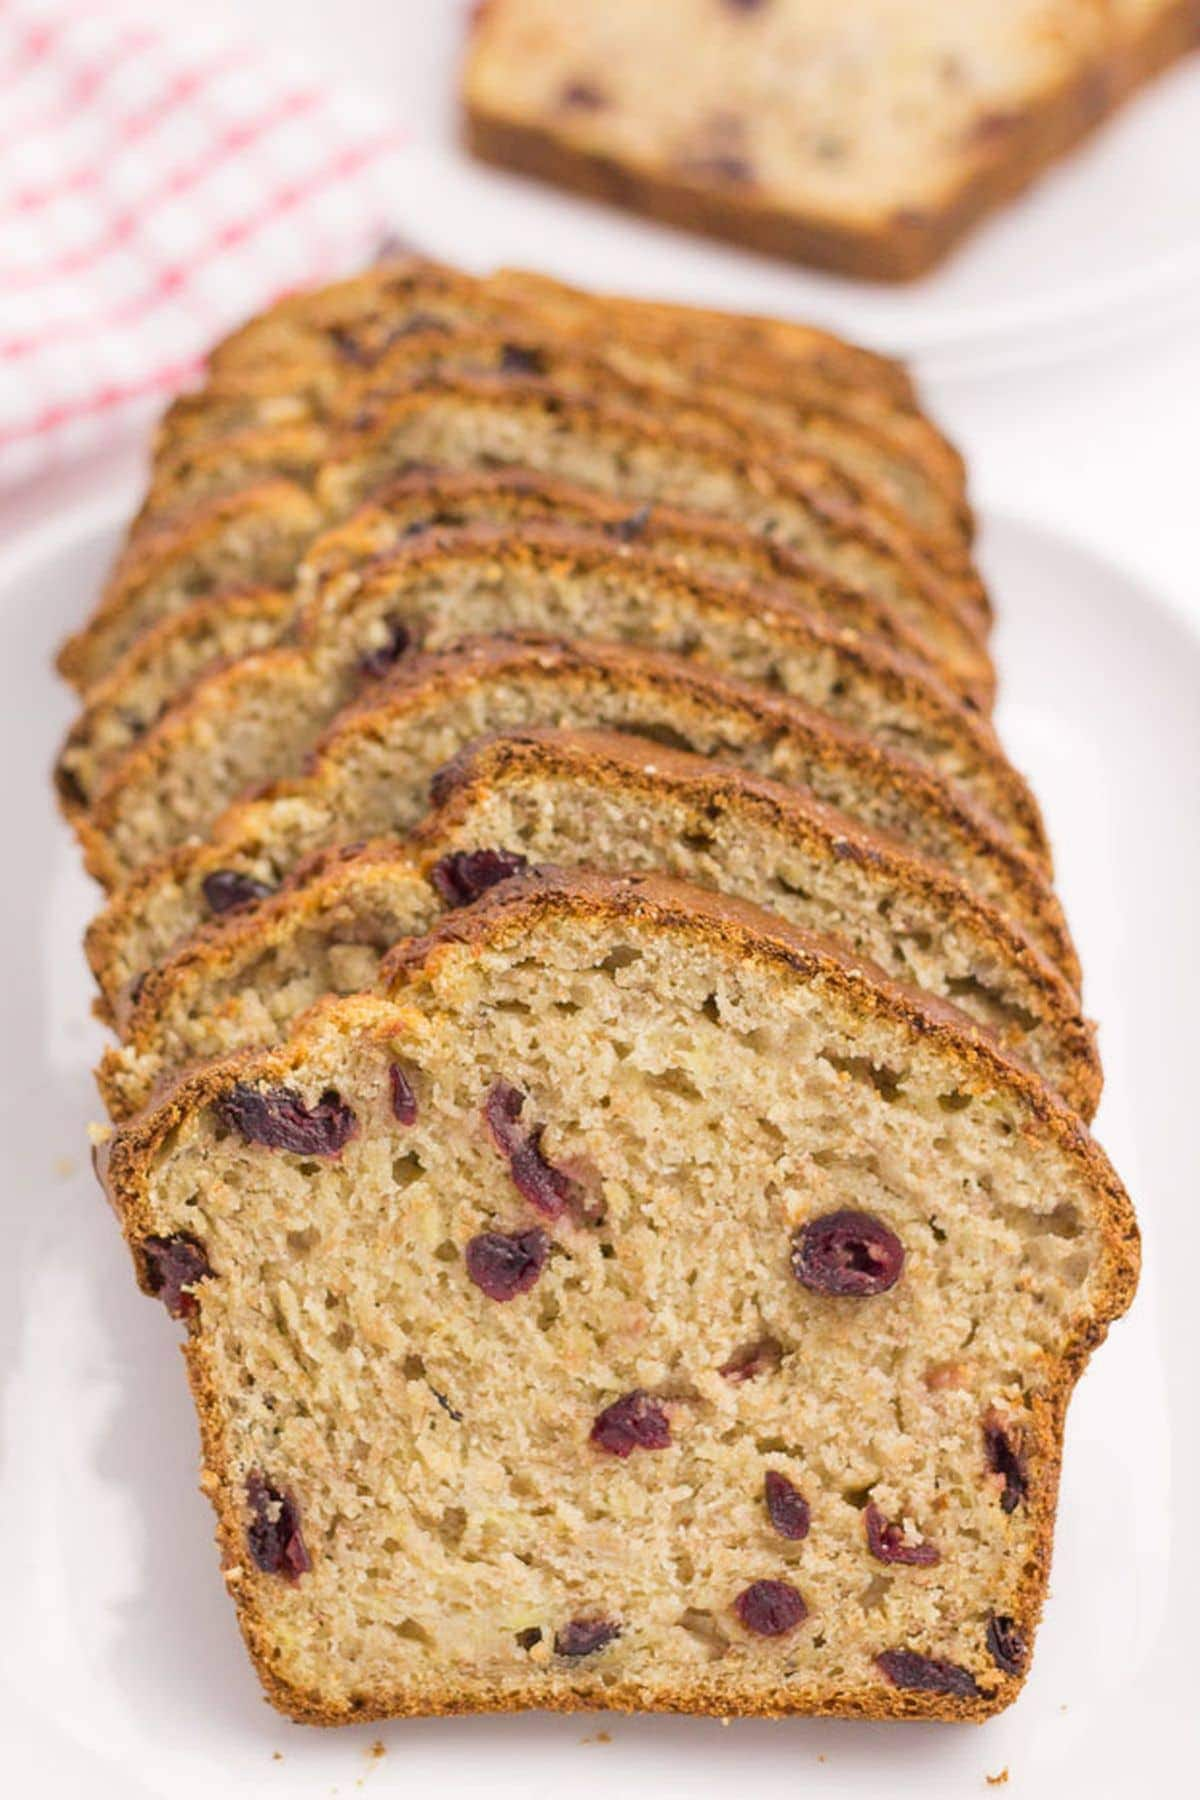 Cranberry banana bread sliced on a serving dish.